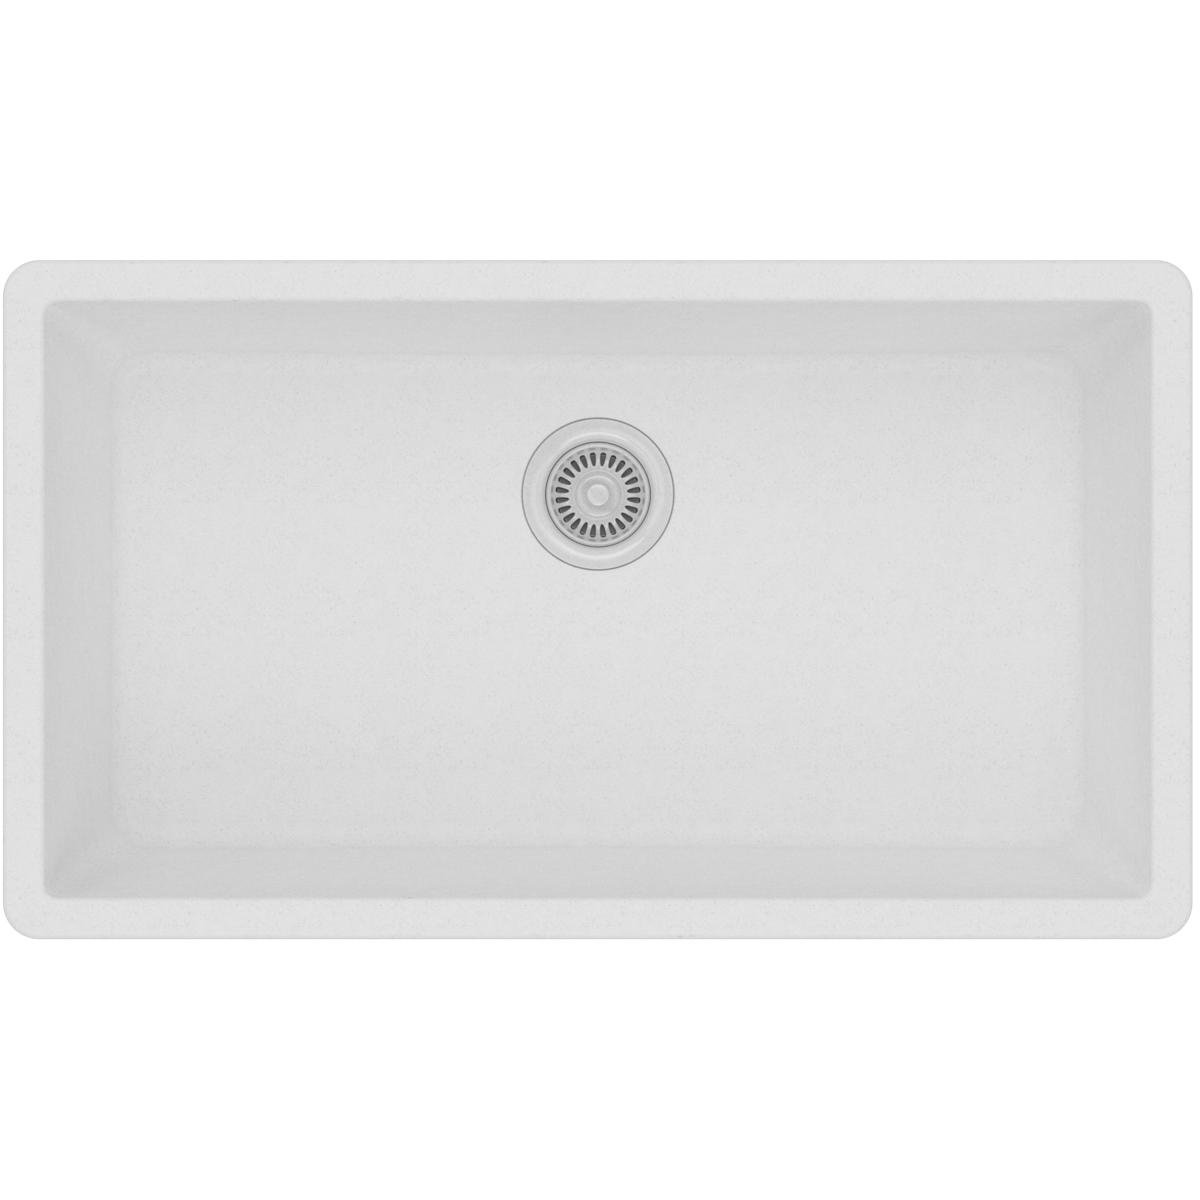 Elkay Quartz Classic ELGRU13322WH0 White Single Bowl Undermount Sink